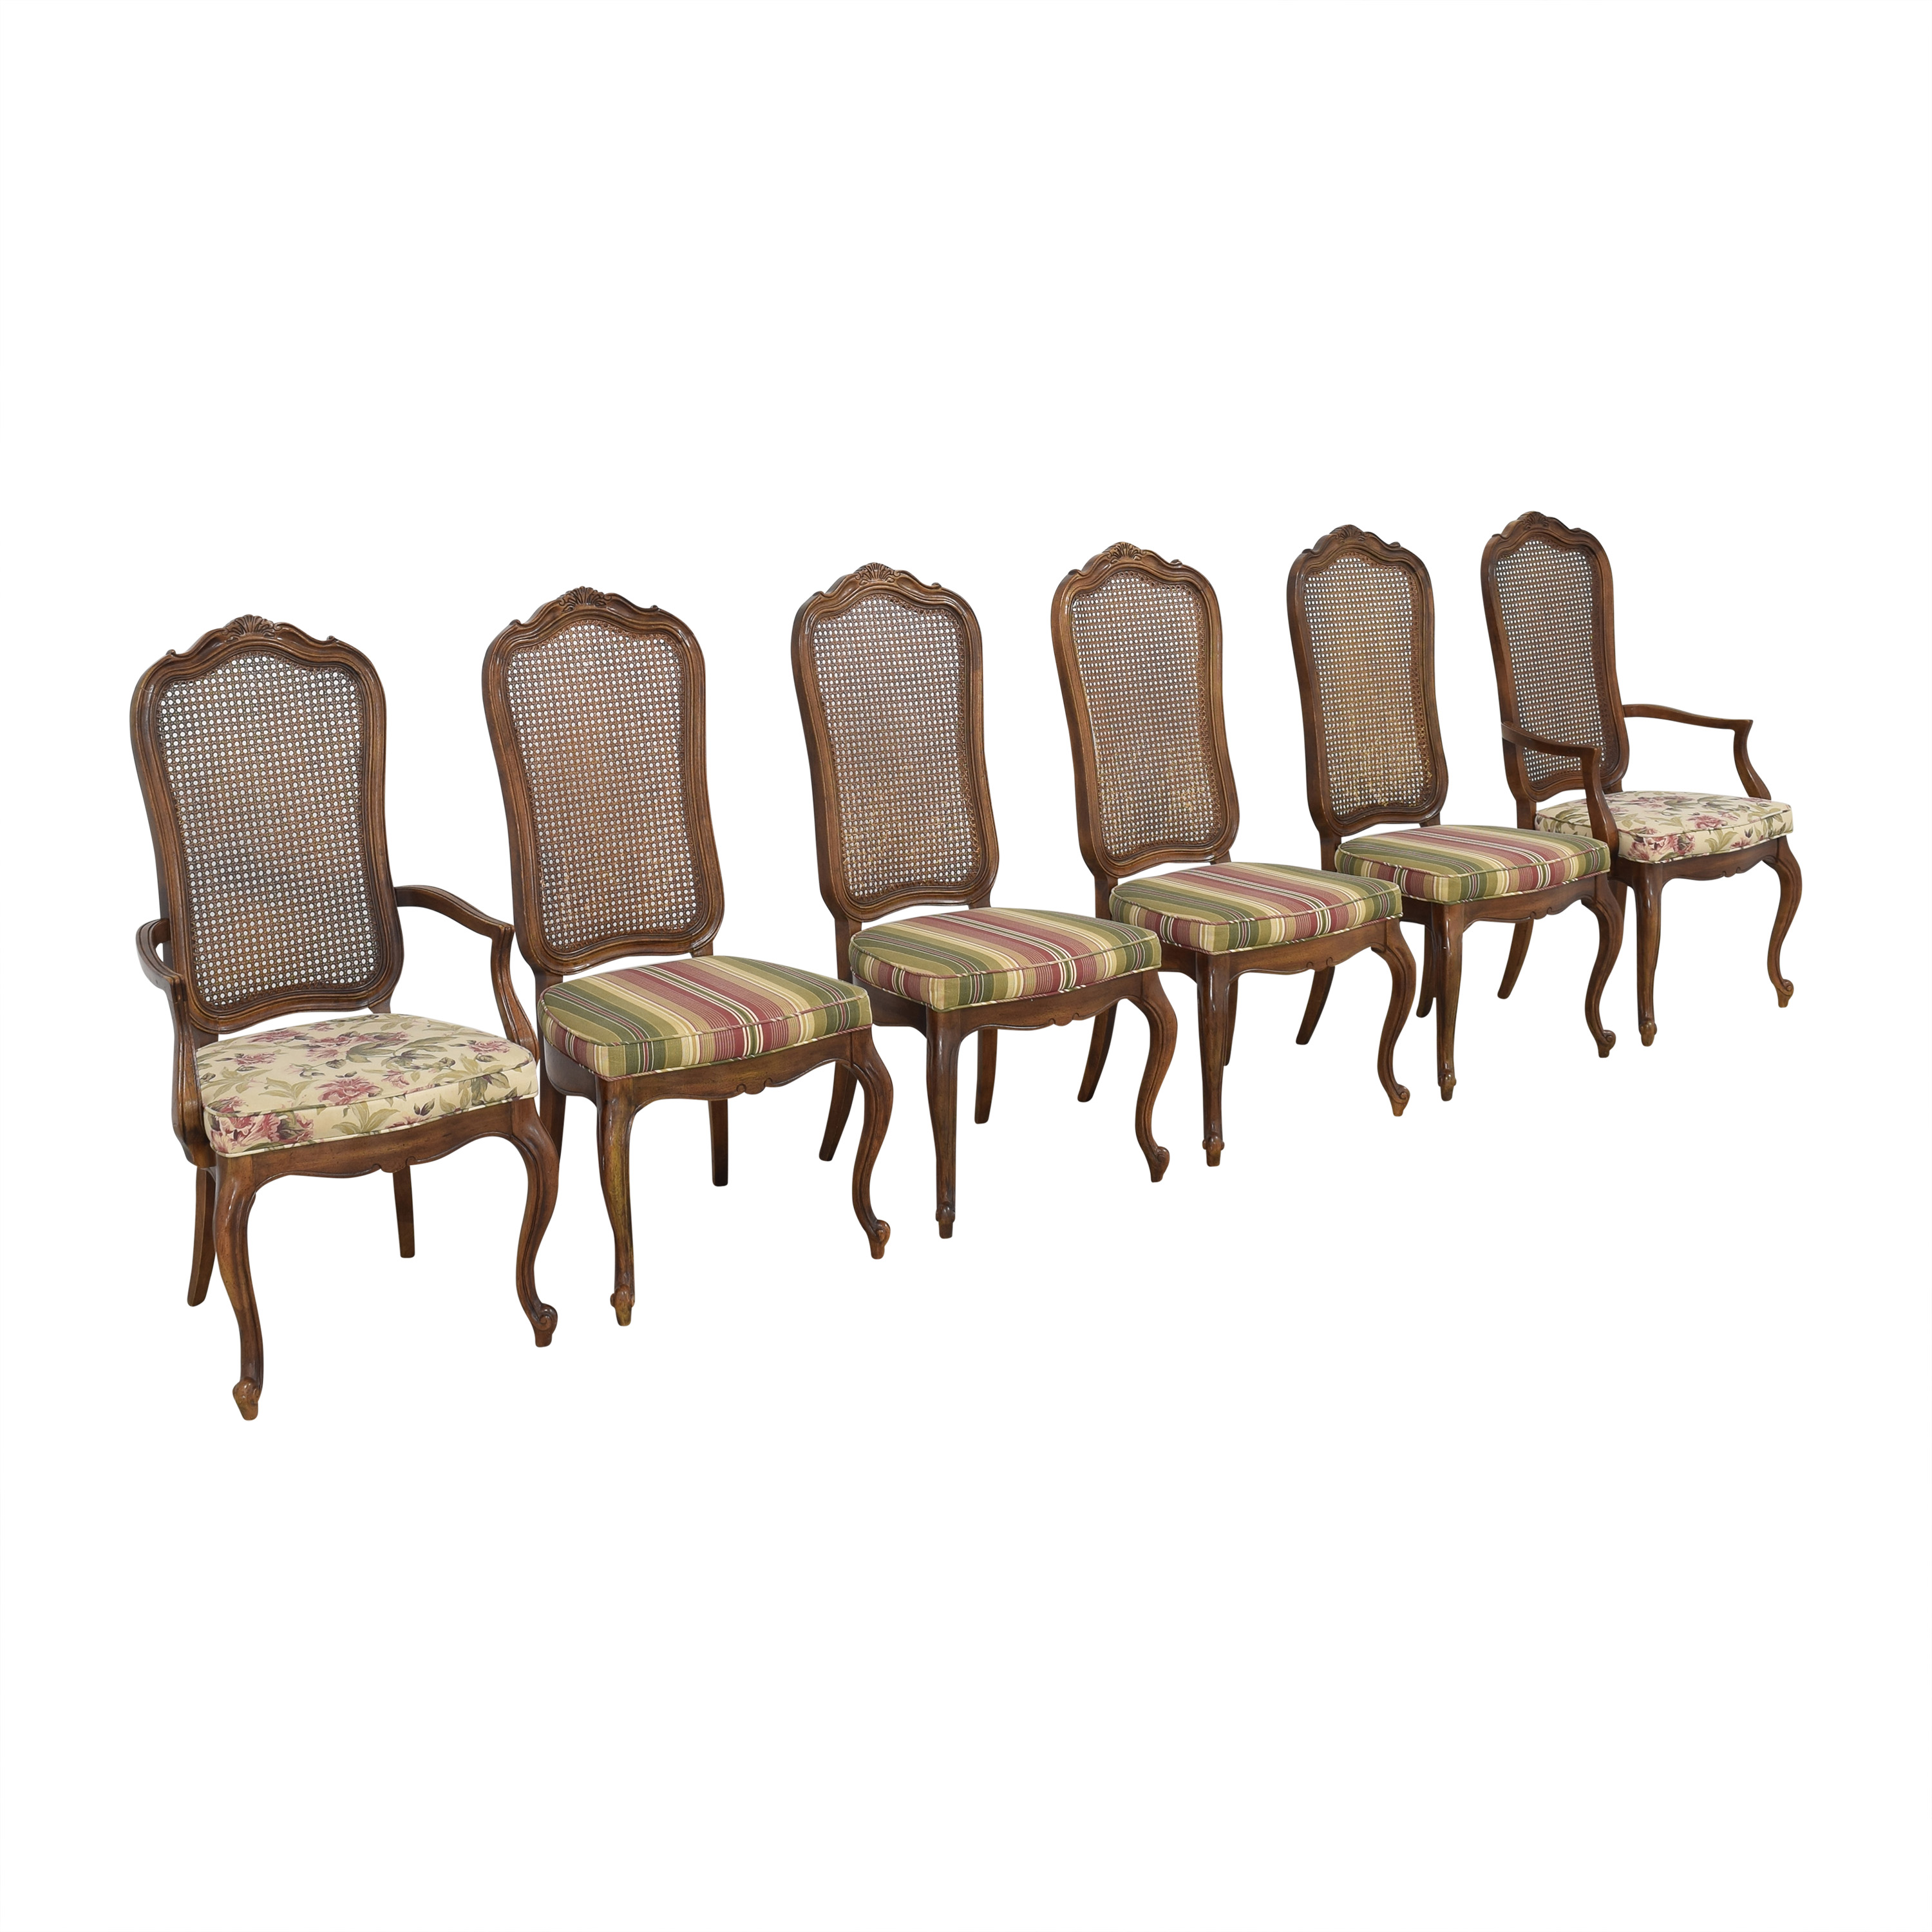 buy Thomasville Thomasville Cane Back Dining Chairs online